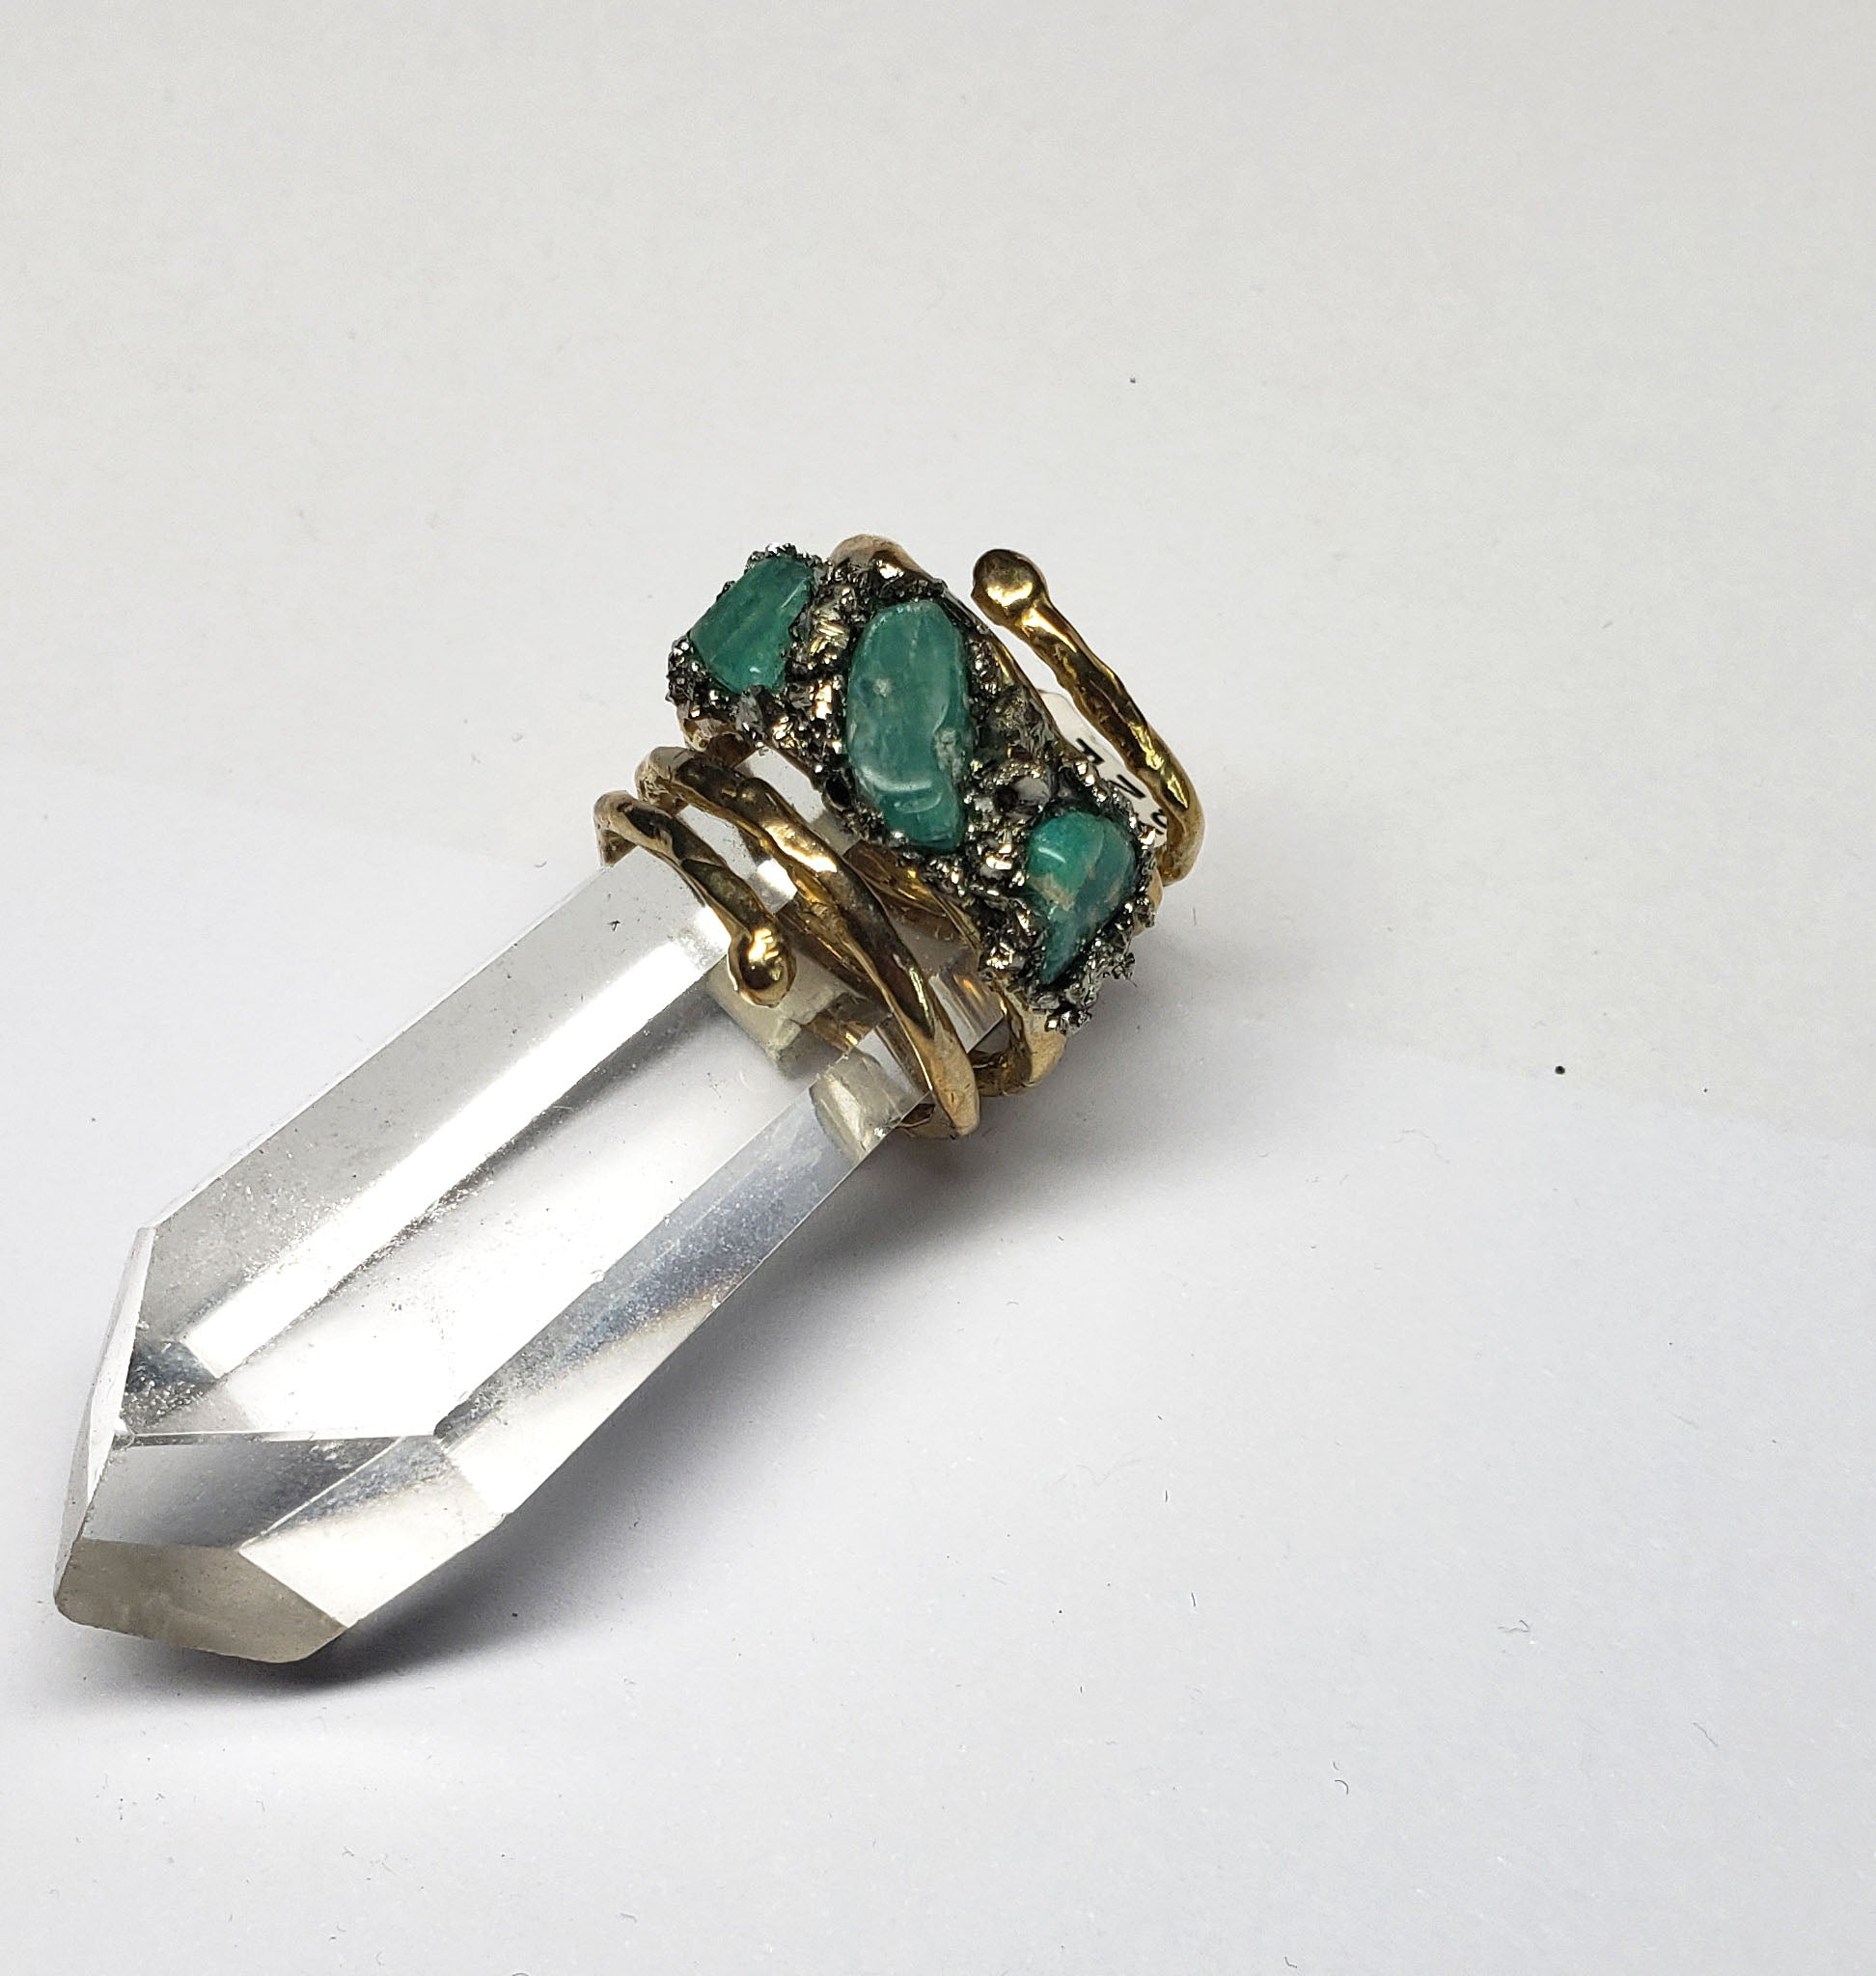 Marly Moretti Gold Brass Spiral Ring with Amazonite Stones - Wanderlustre